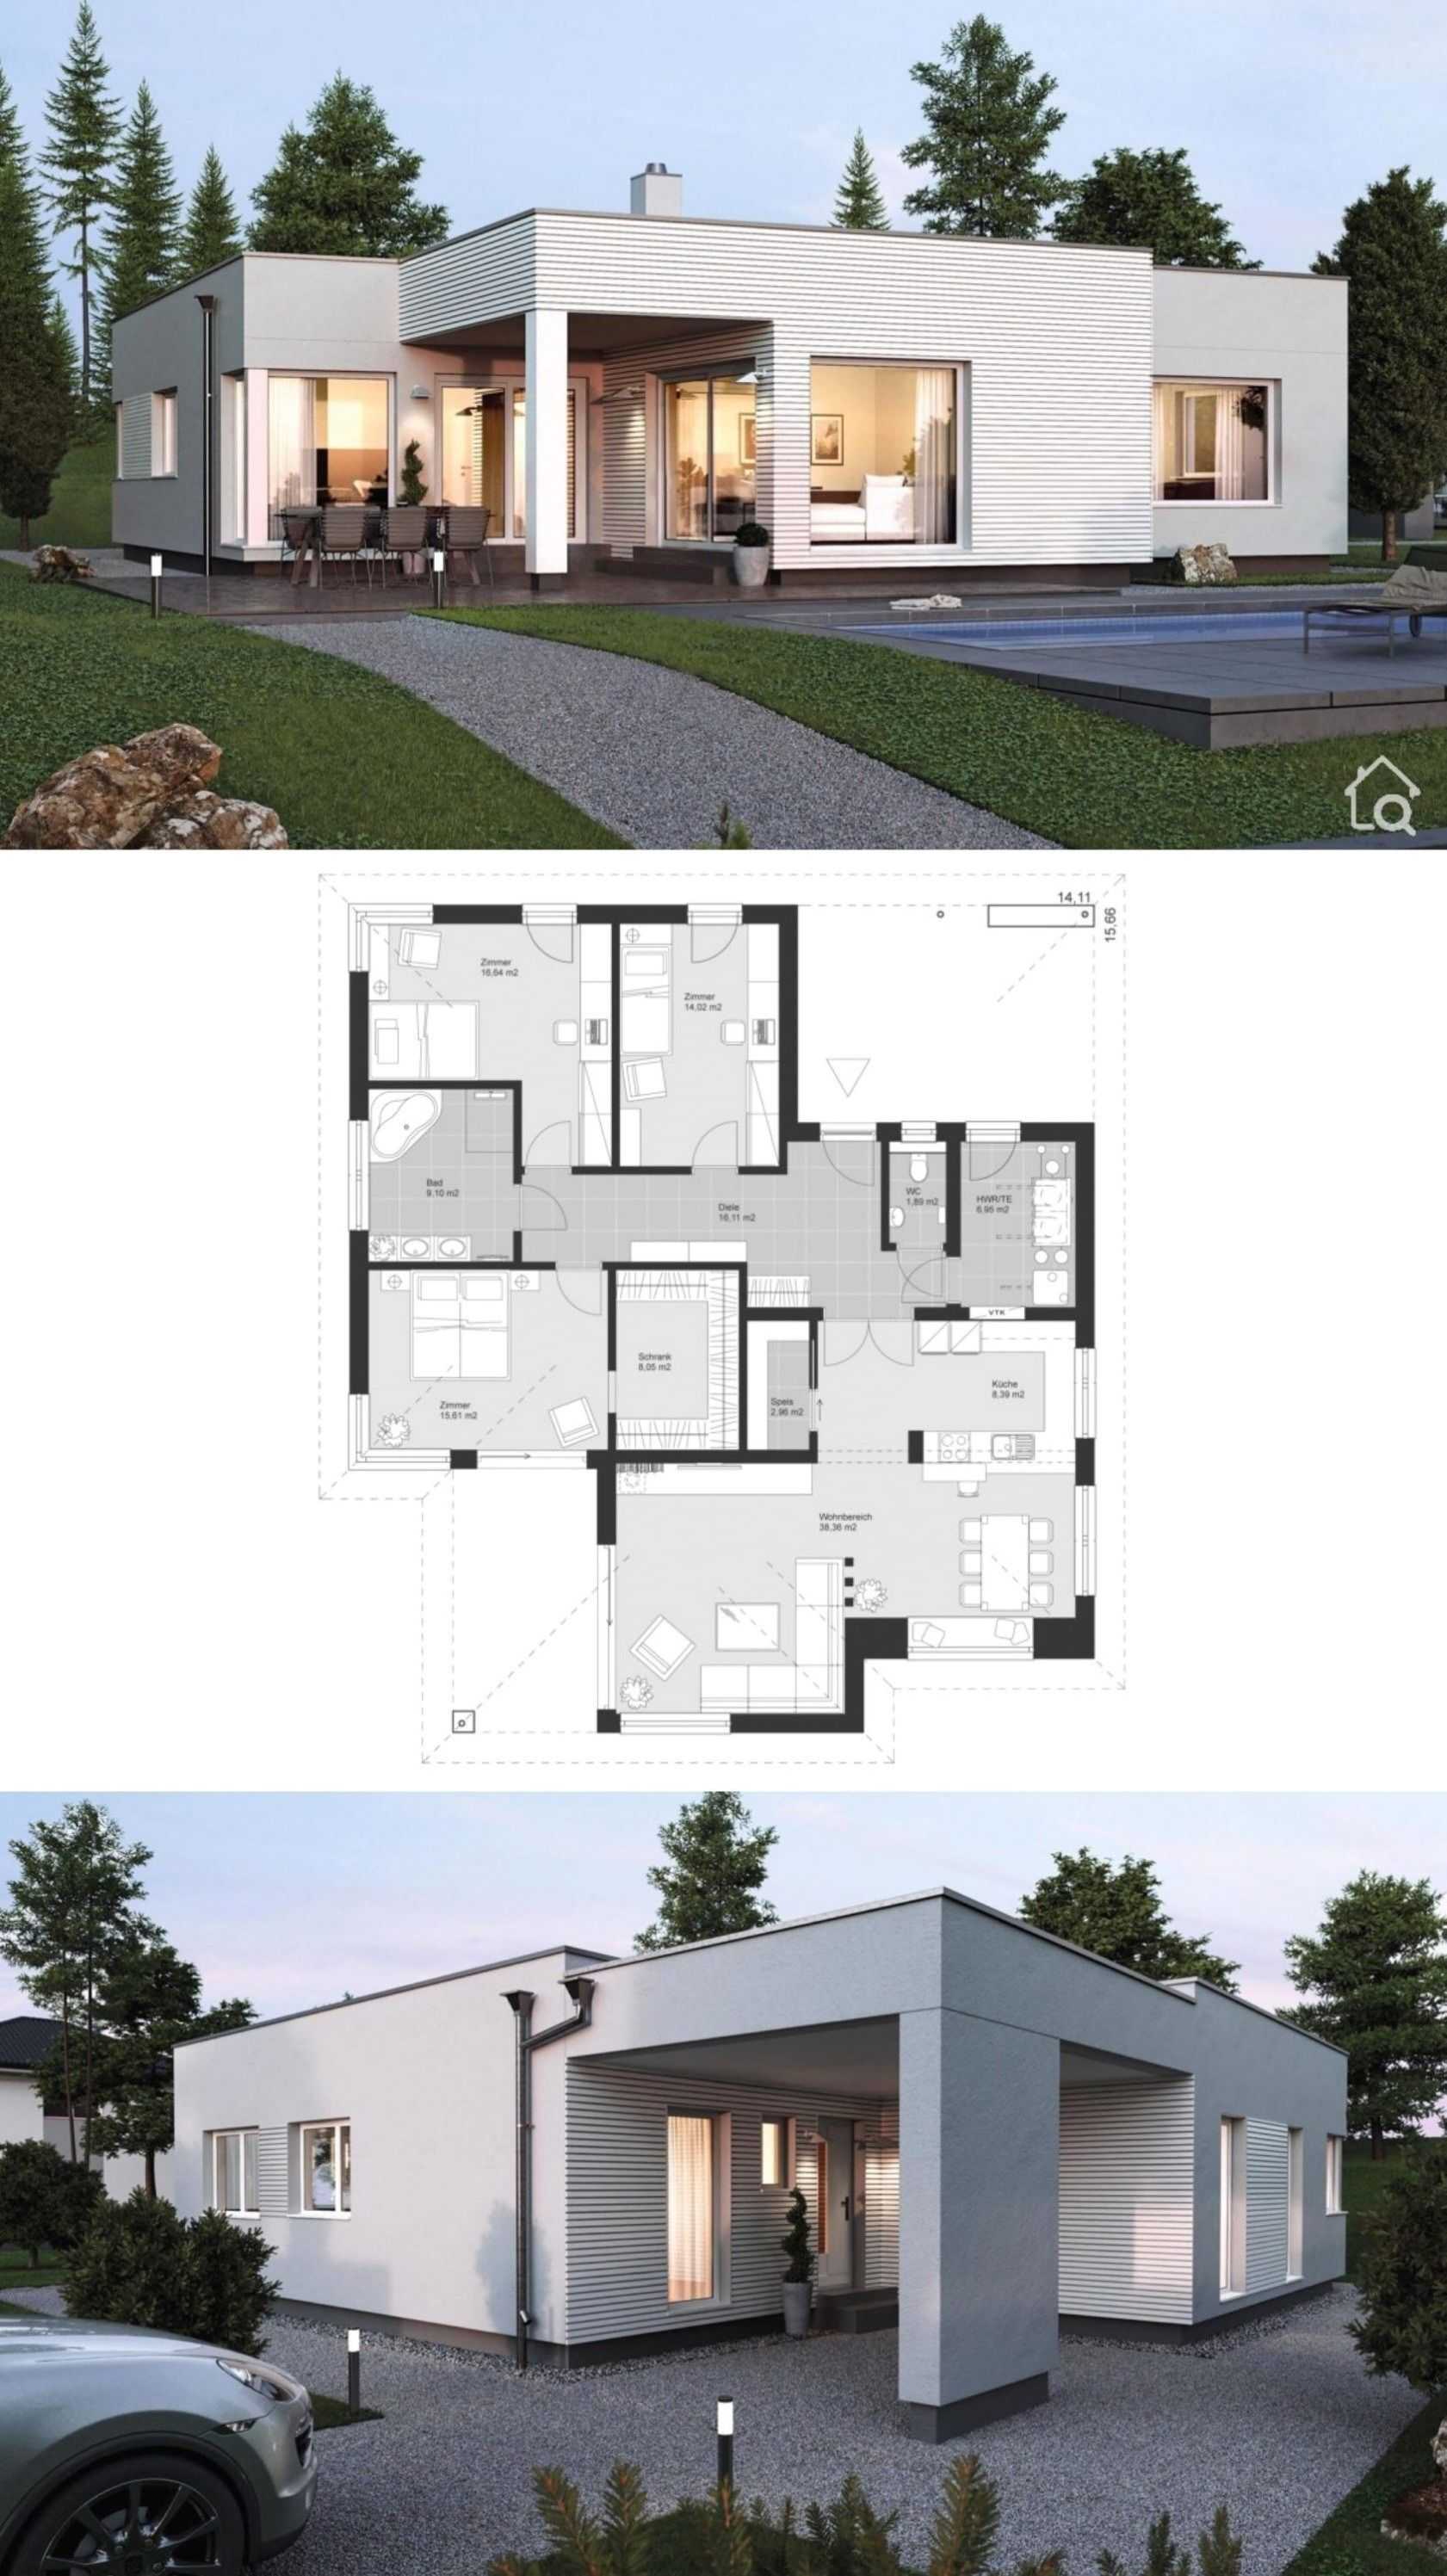 Bungalow House Design Modern In White With Flat Roof Architecture In The Bauhaus Style In 2020 House Construction Plan Bungalow House Design Modern Style House Plans